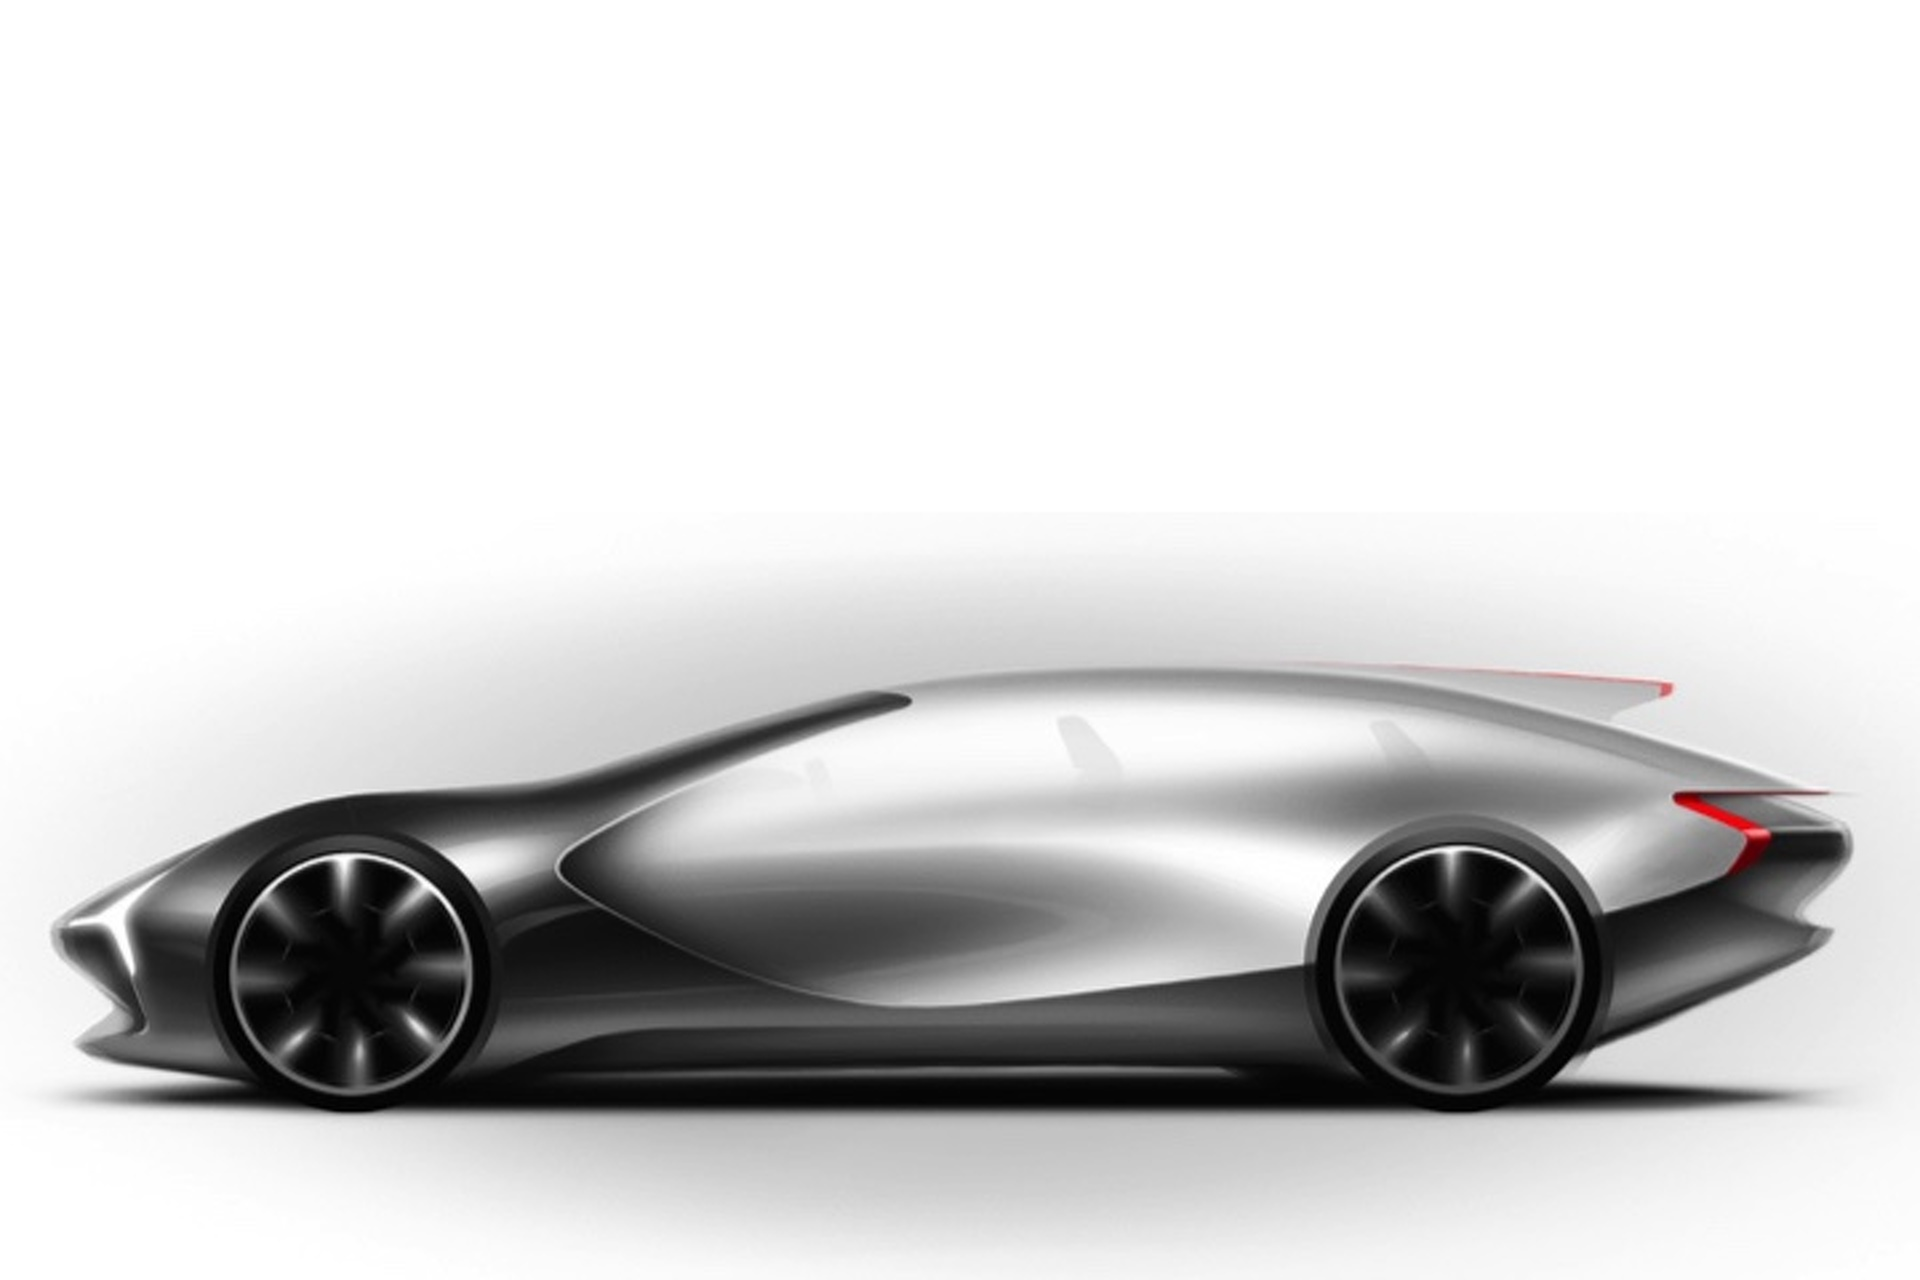 Chinese Startup Le Supercar Plans to Take on Tesla With New EV